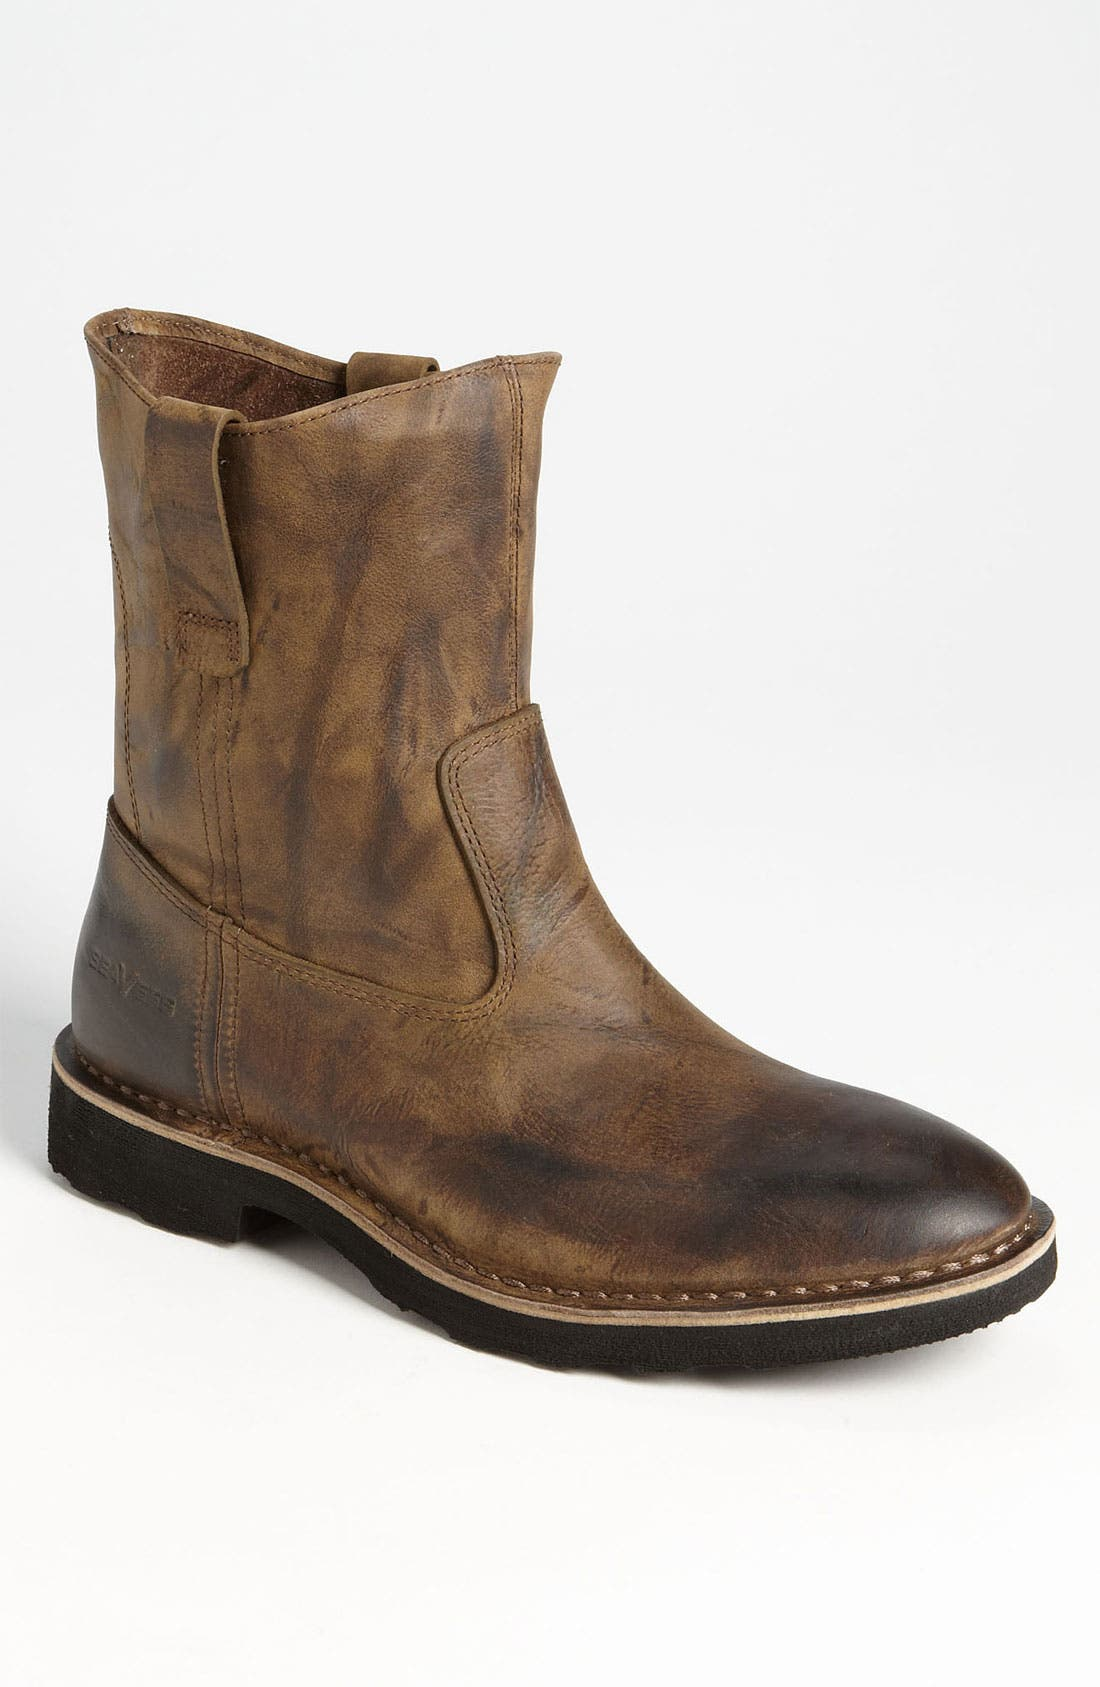 Alternate Image 1 Selected - SeaVees '10/66 Harvest' Boot (Online Only)